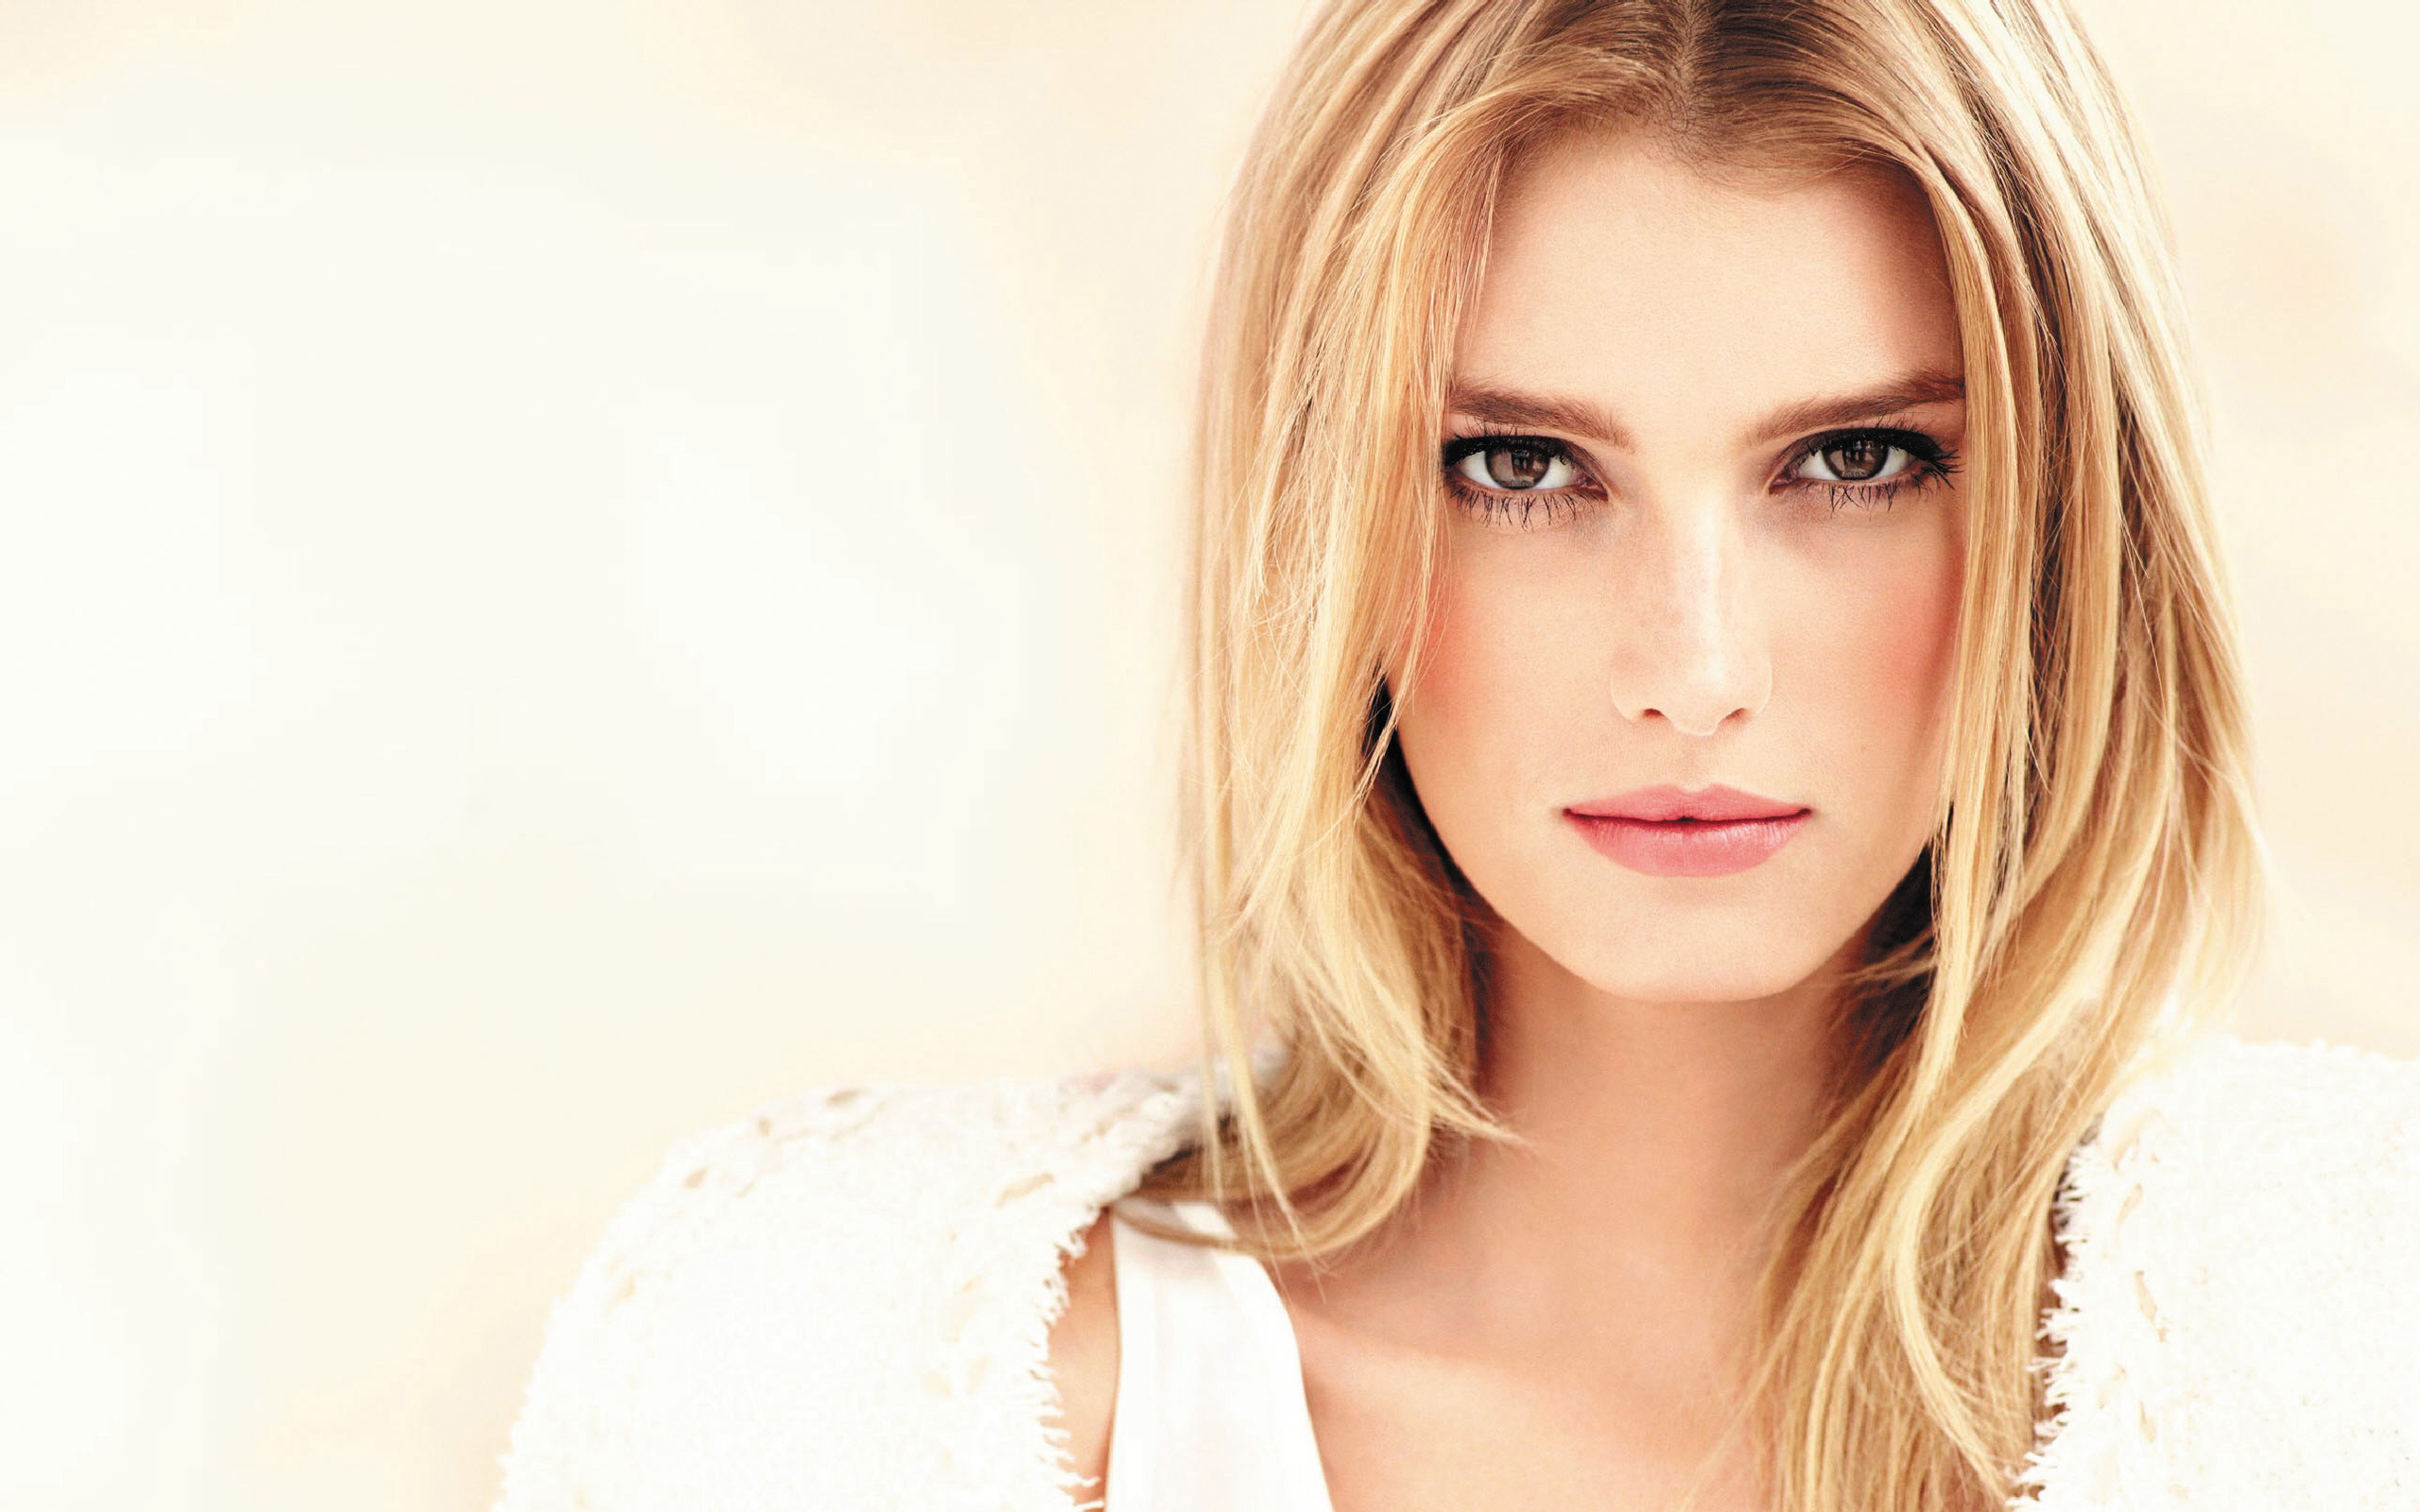 Sigrid Agren Full HD Wallpaper and Background Image ...